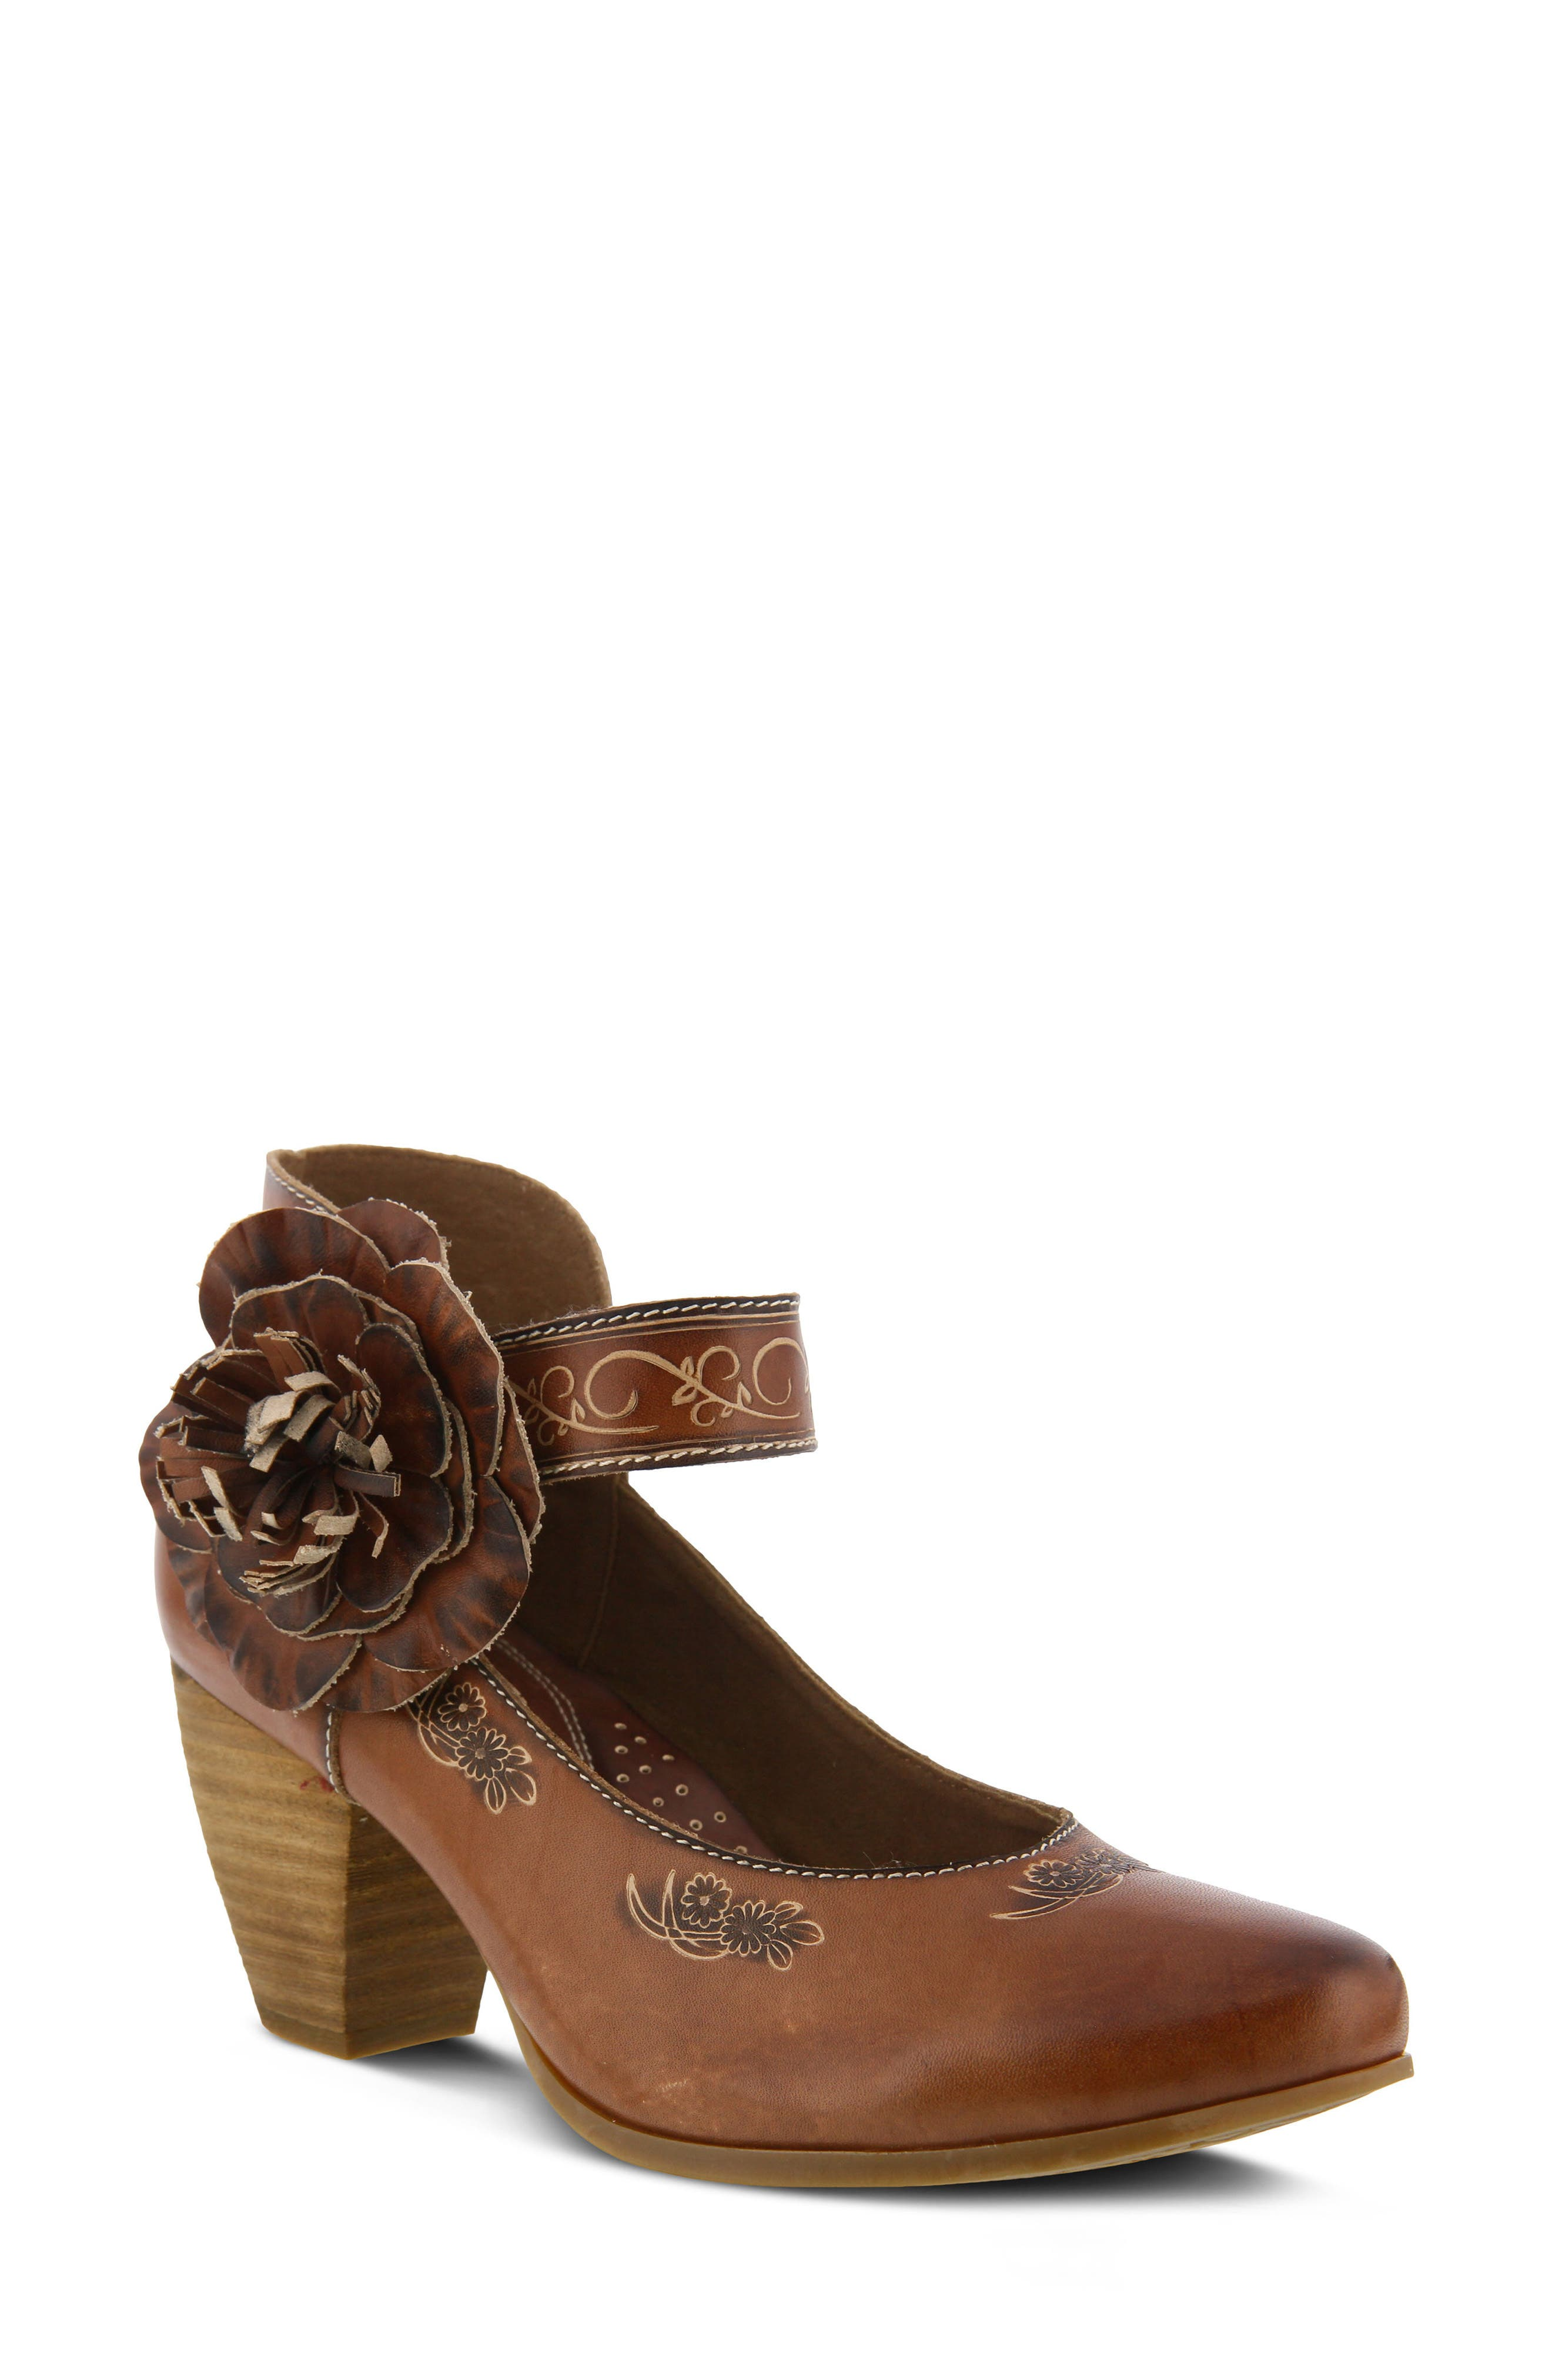 L'Artiste Tosha Pump,                         Main,                         color, Brown Leather